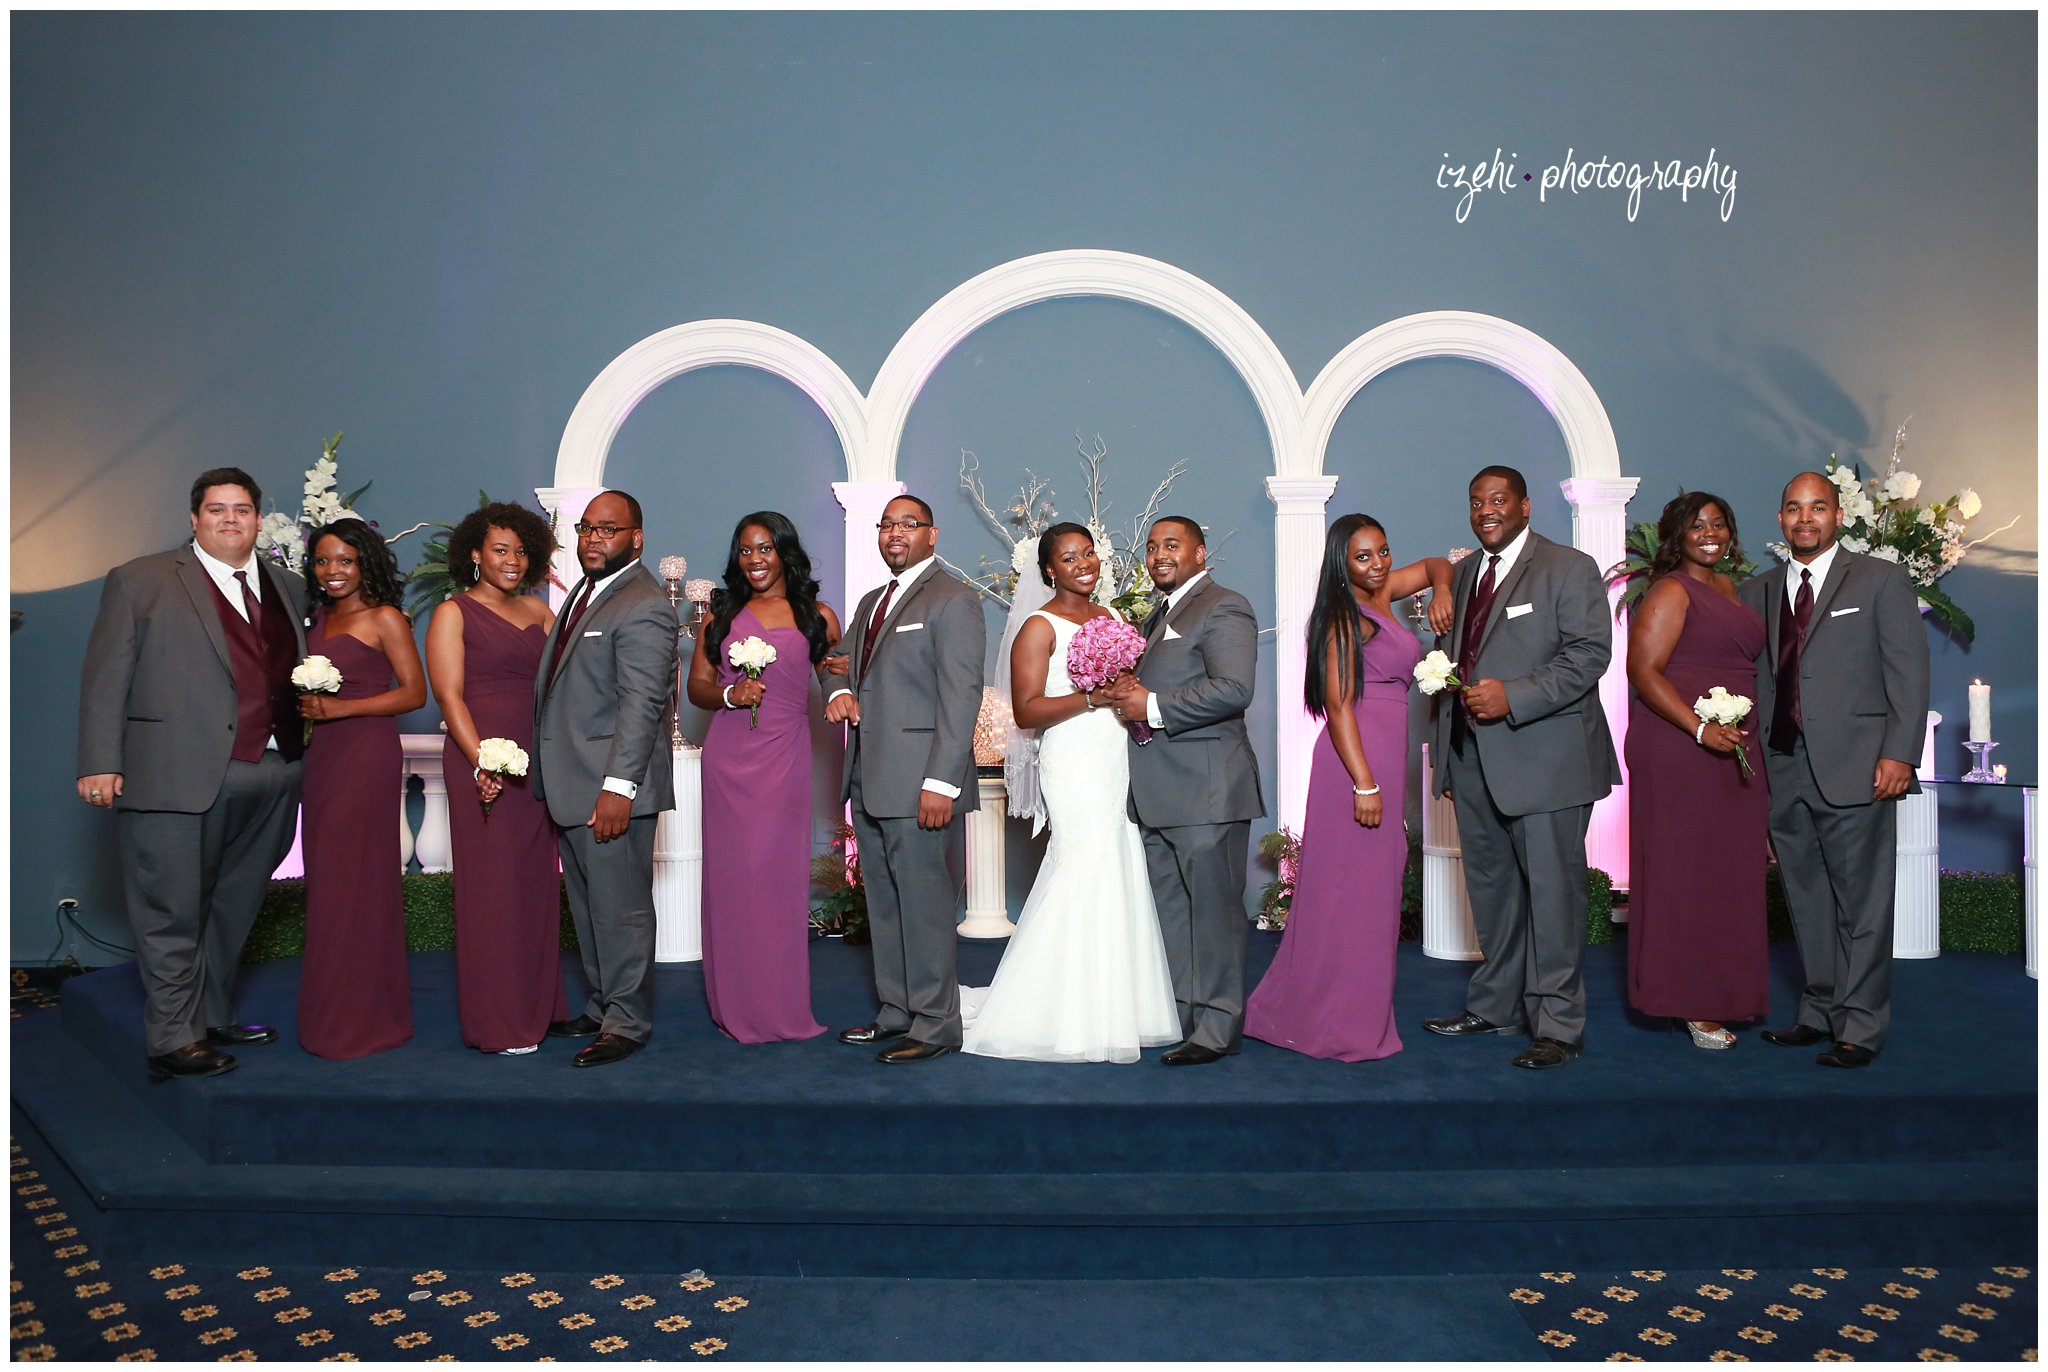 Izehi Photography Weddings_0177.jpg